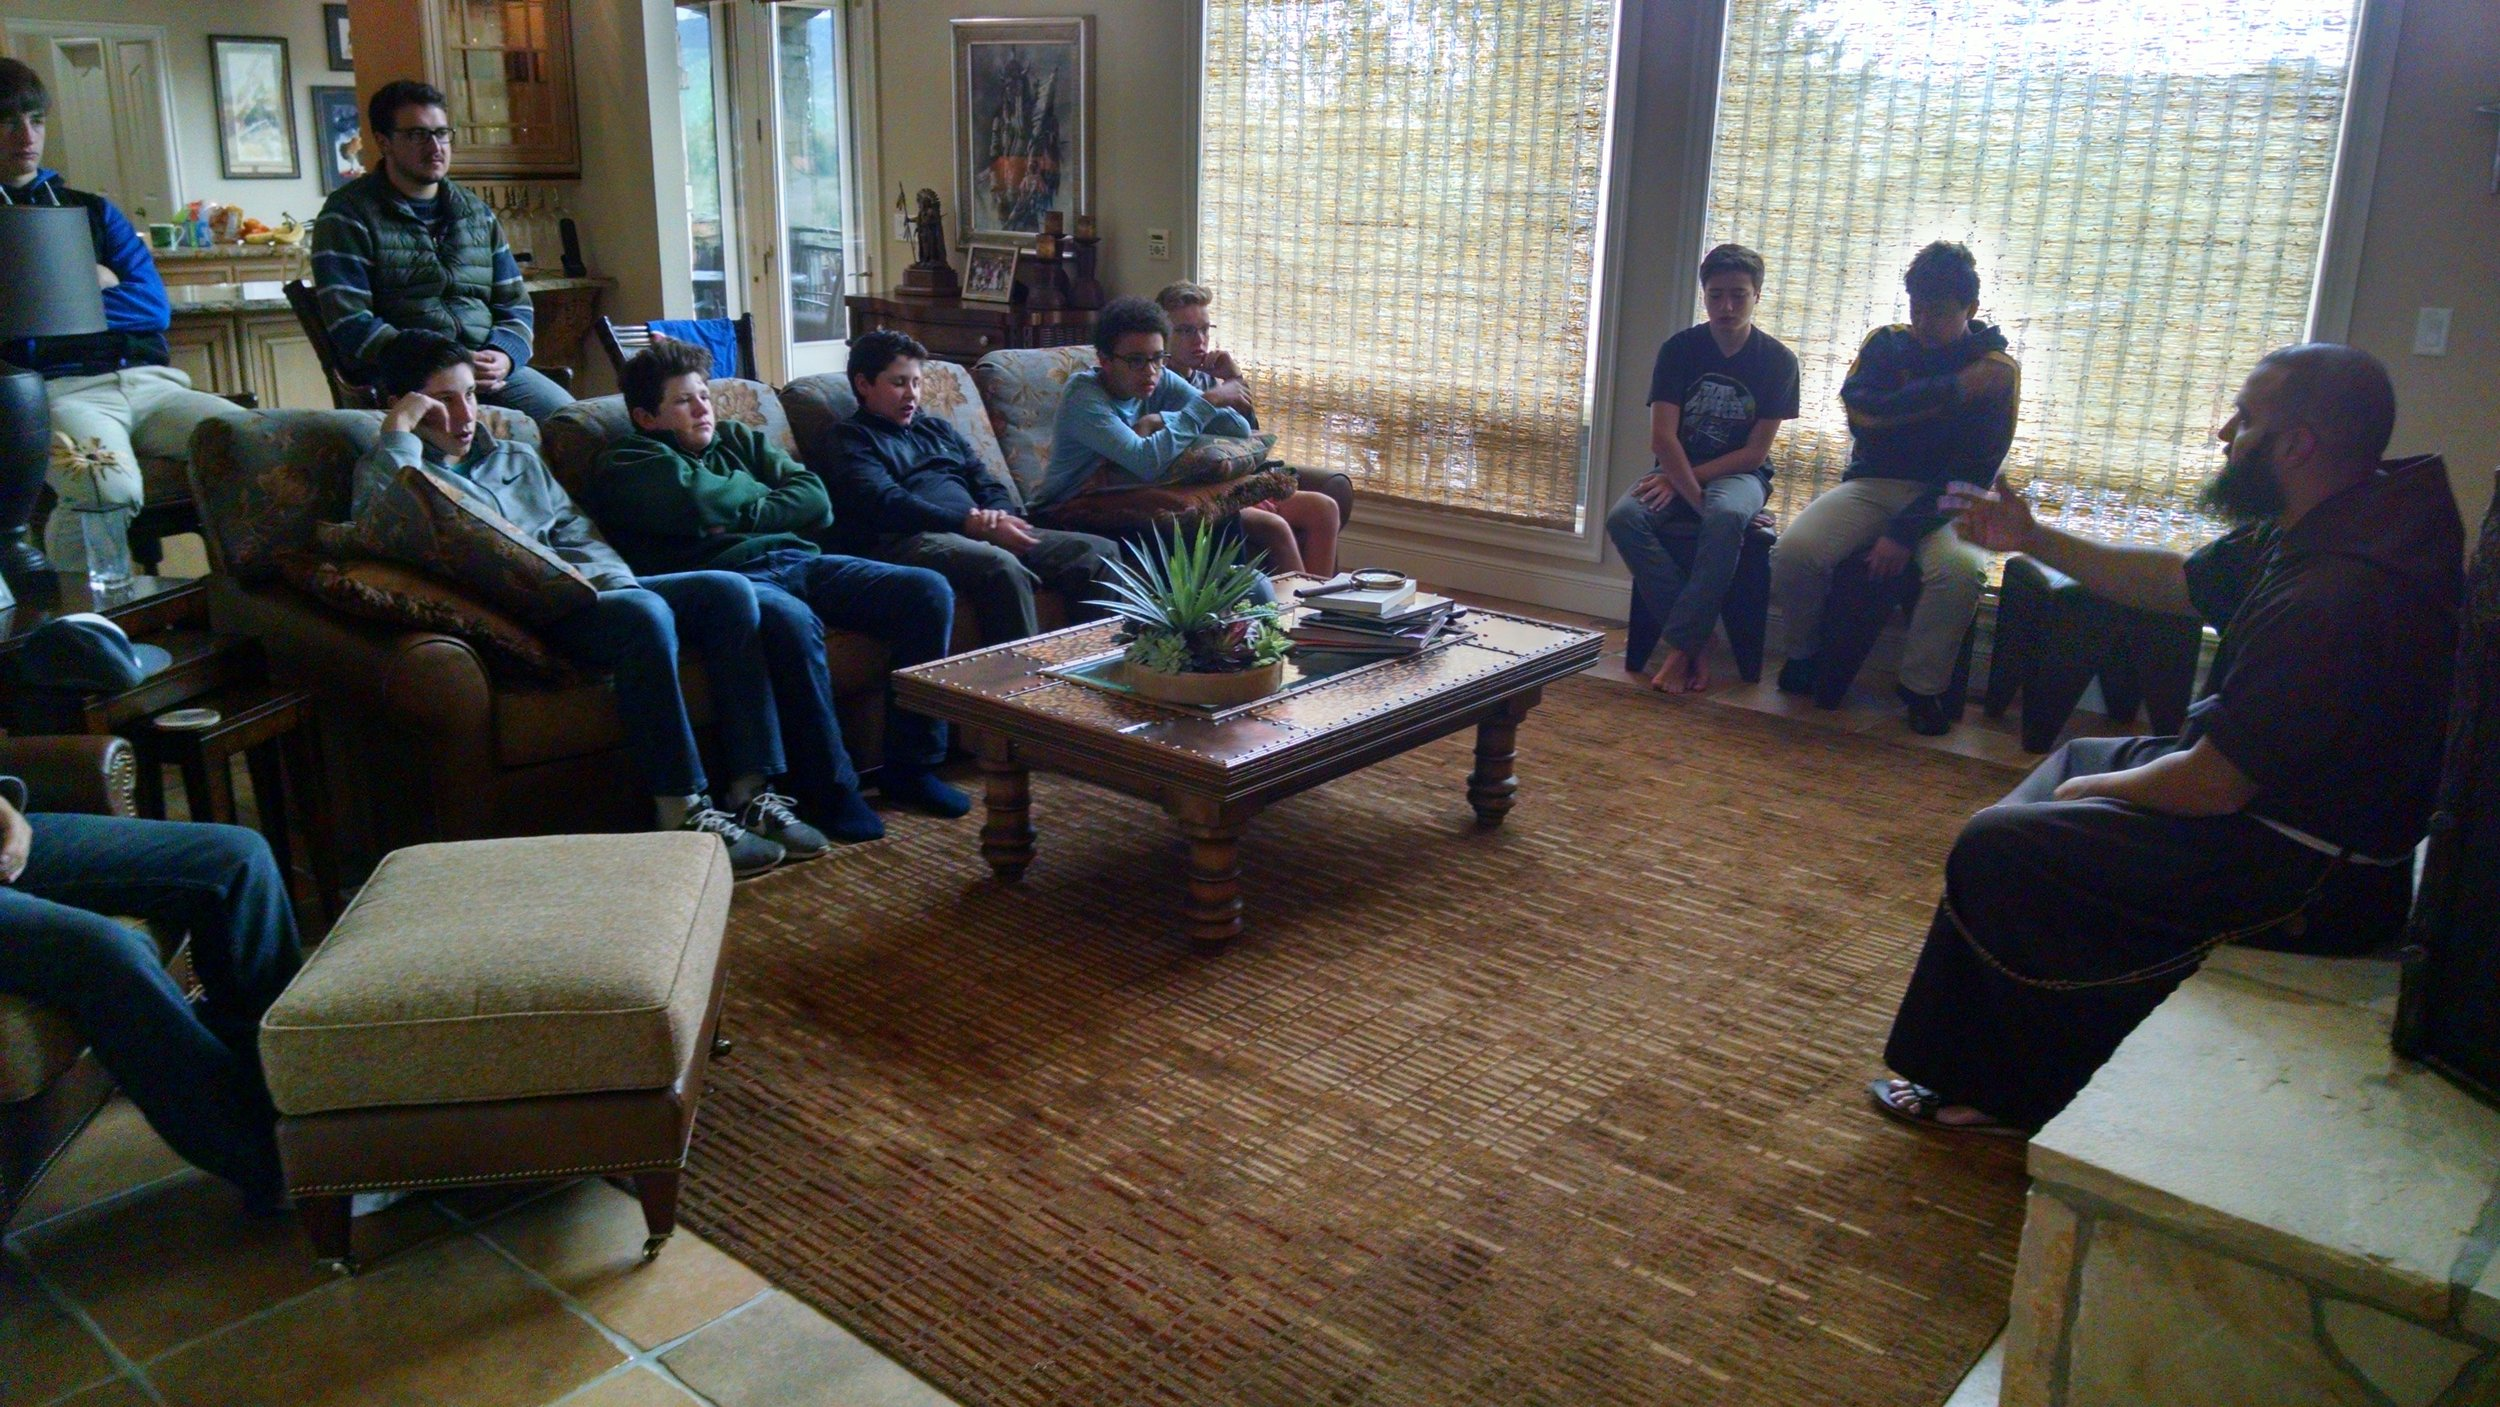 Study - Learning from our chaplain, Fr. Chris Gama, O.F.M. Cap.